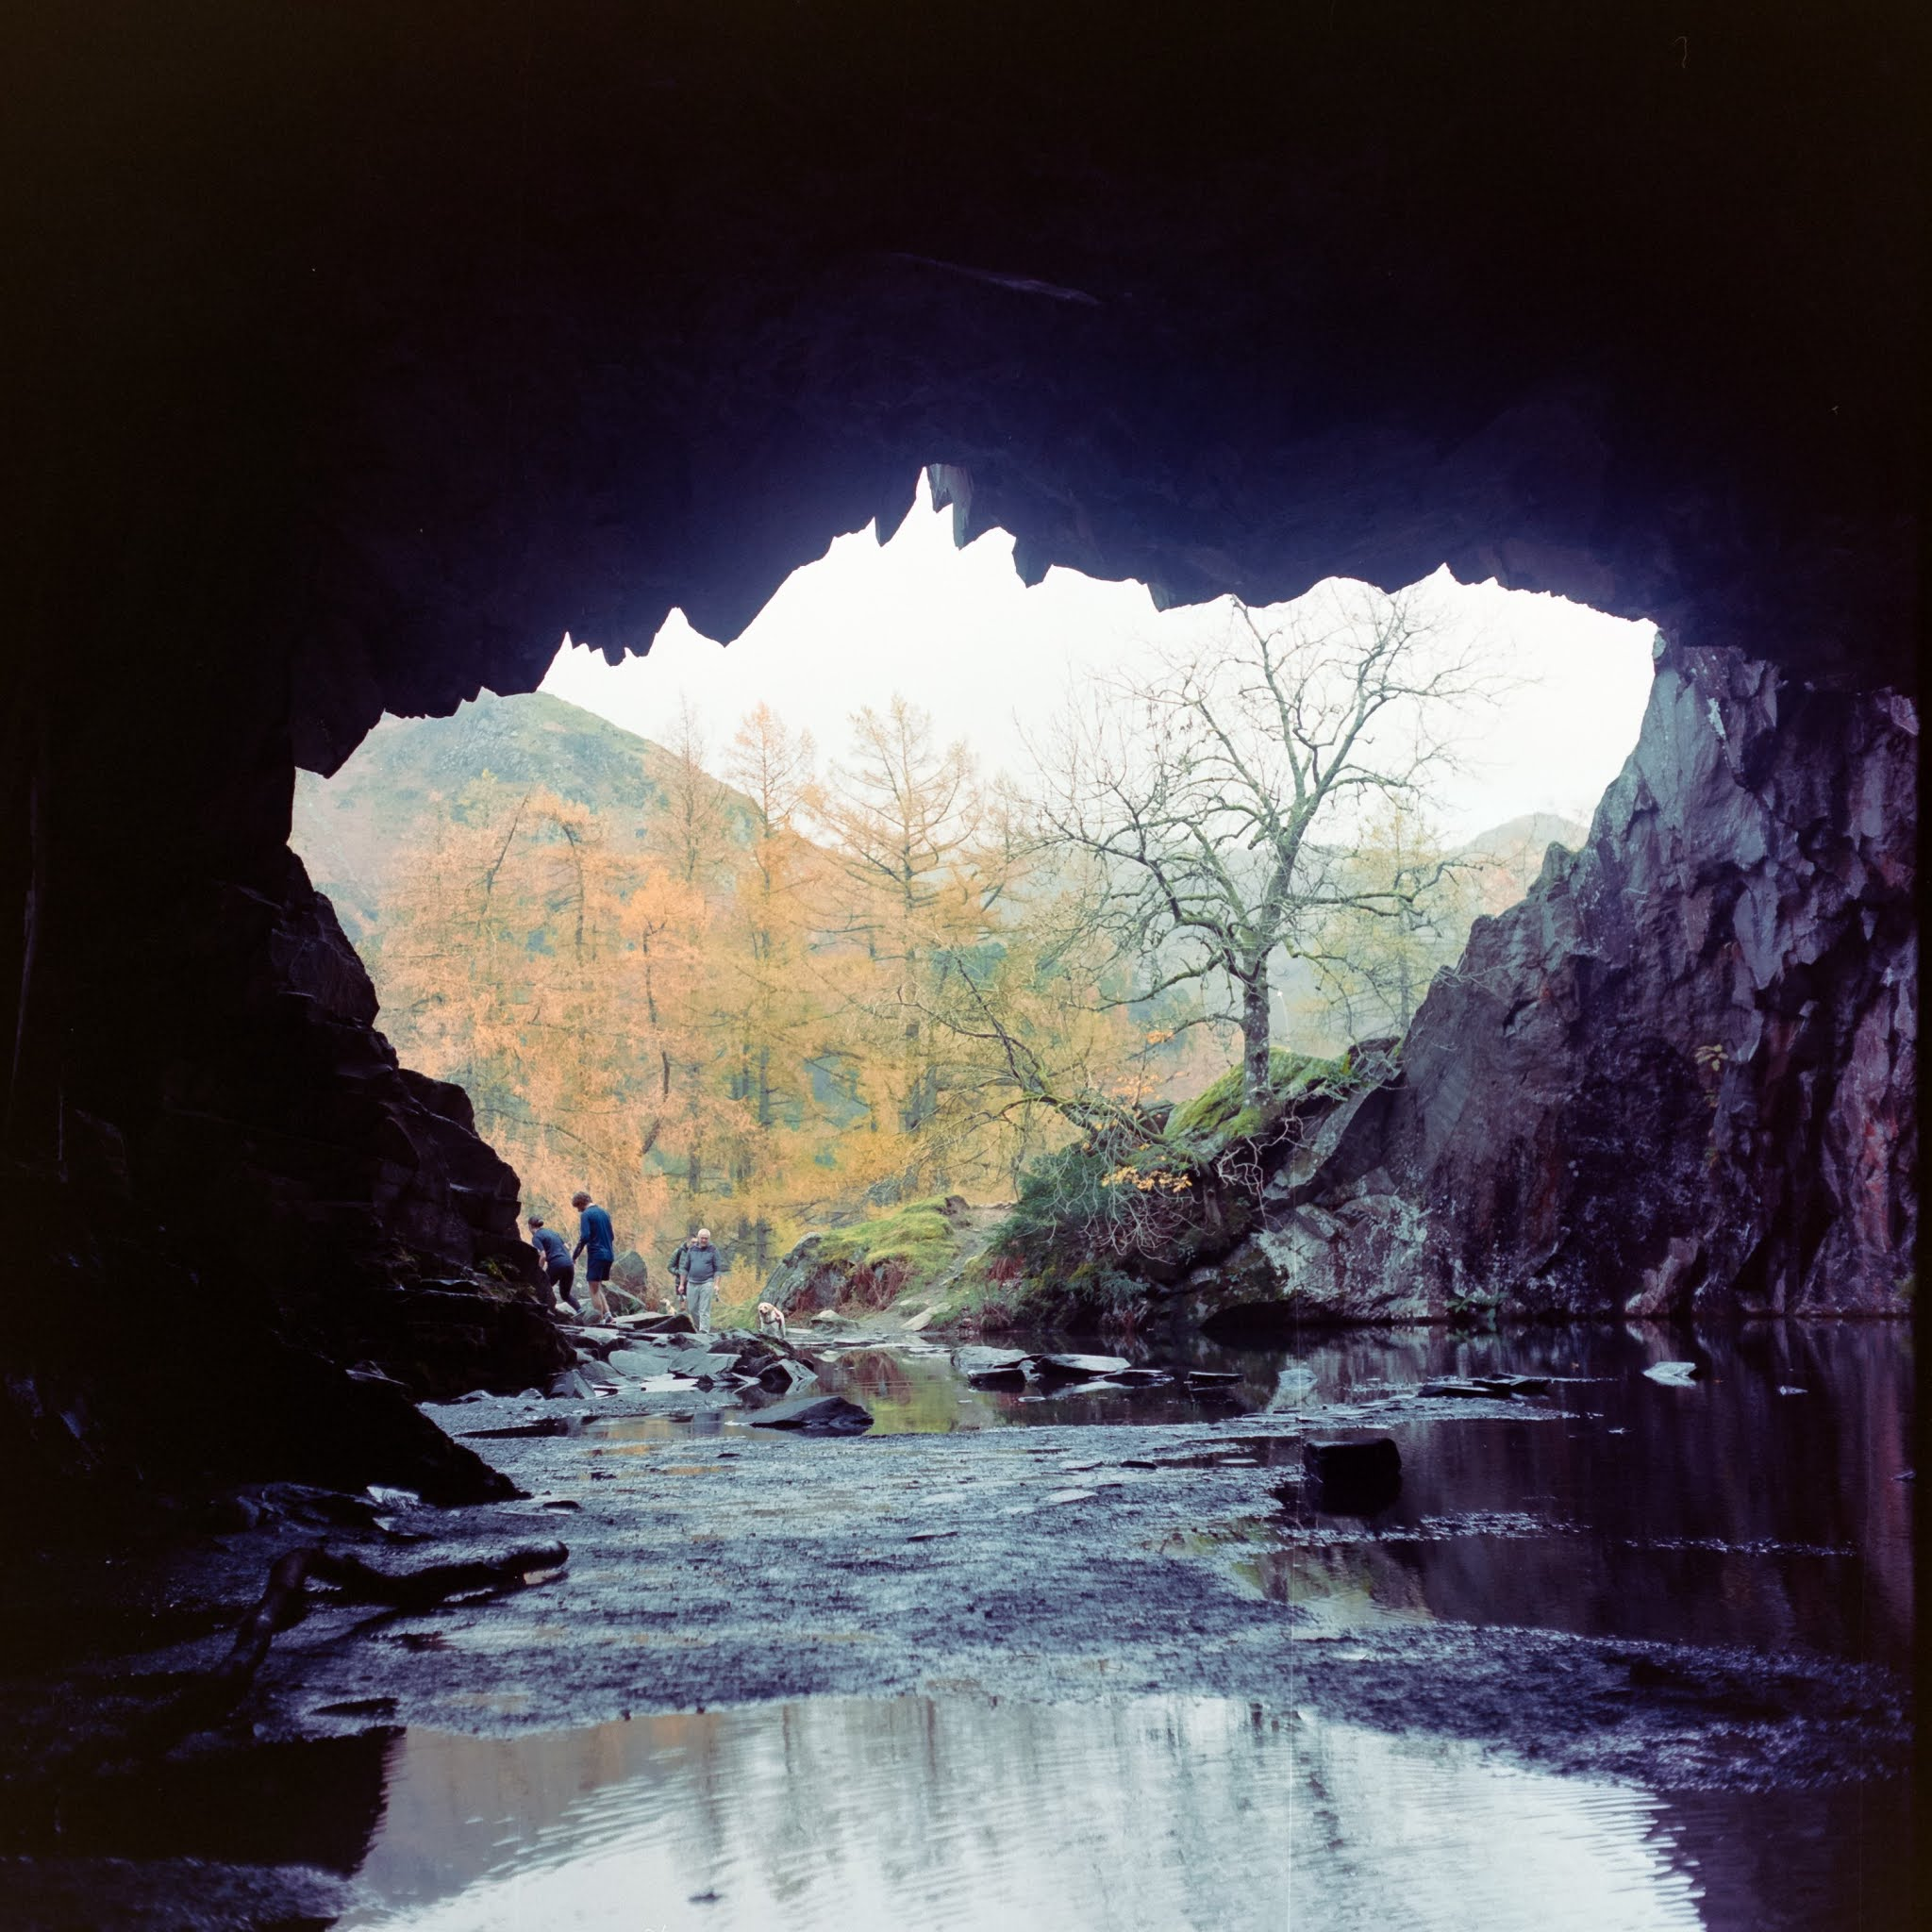 Inside Rydal Cave